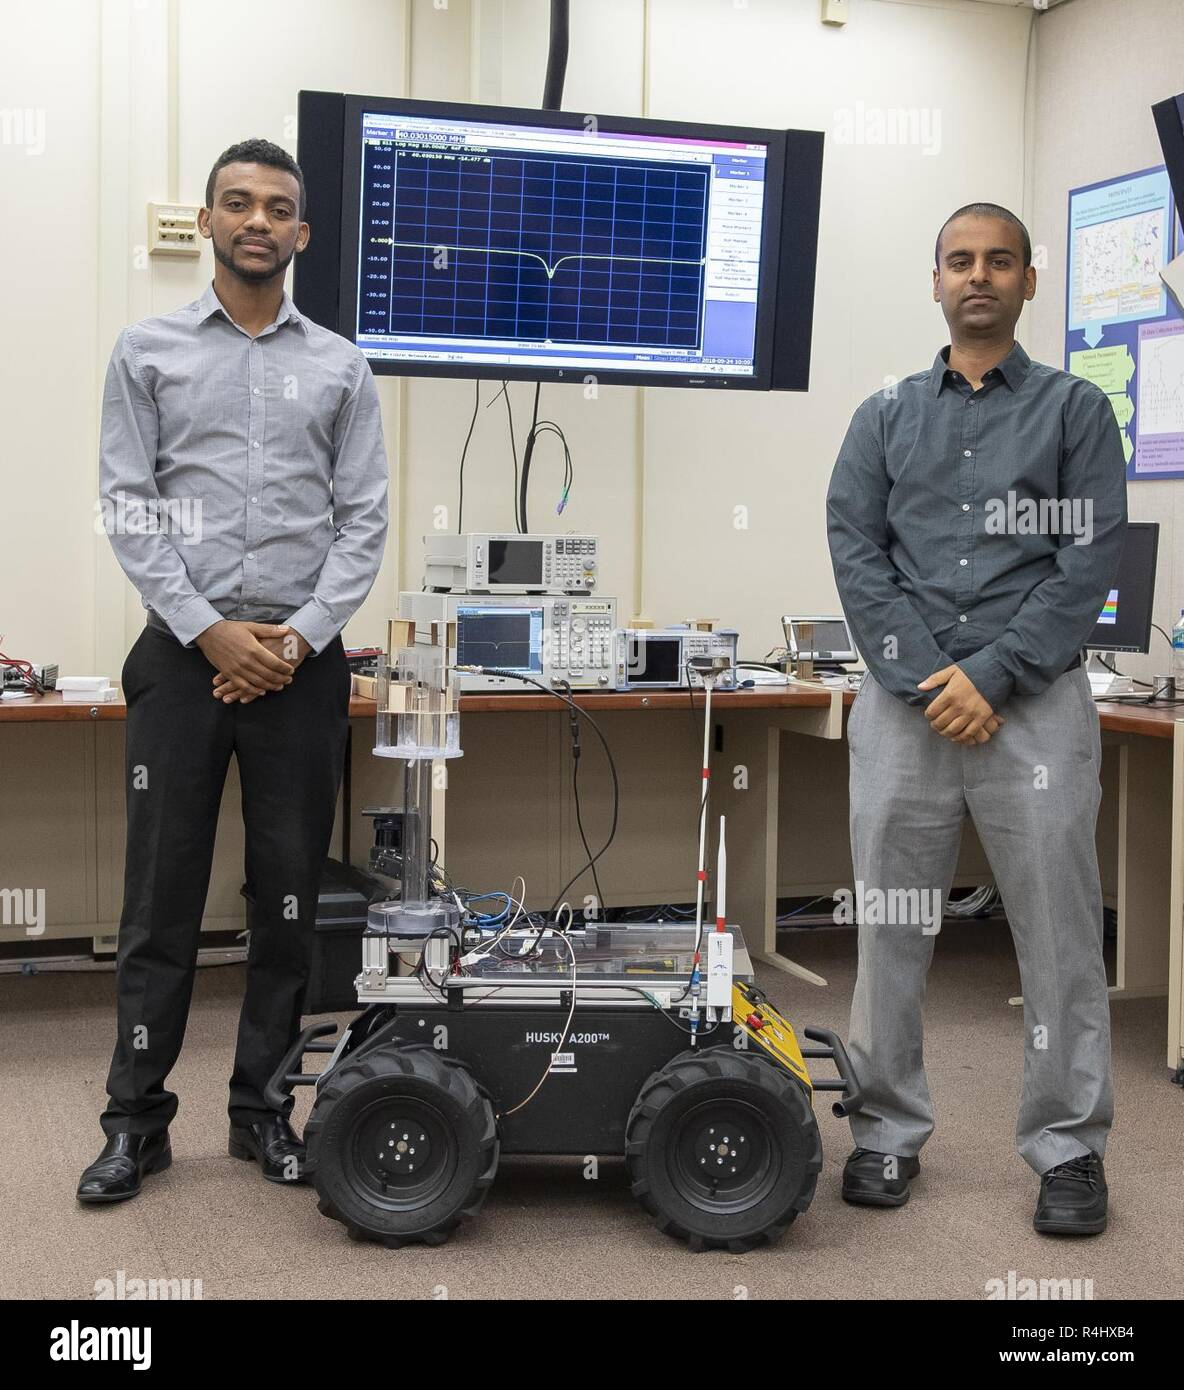 U.S. Army Research Laboratory scientists Dr. Fikadu Dagefu (left) and Gunjan Verma (right) pose with one of the robots used to validate a new algorithm they developed, which enables localization of humans and robots indoors or in areas with many obstacles where GPS signals are likely to be unavailable. - Stock Image